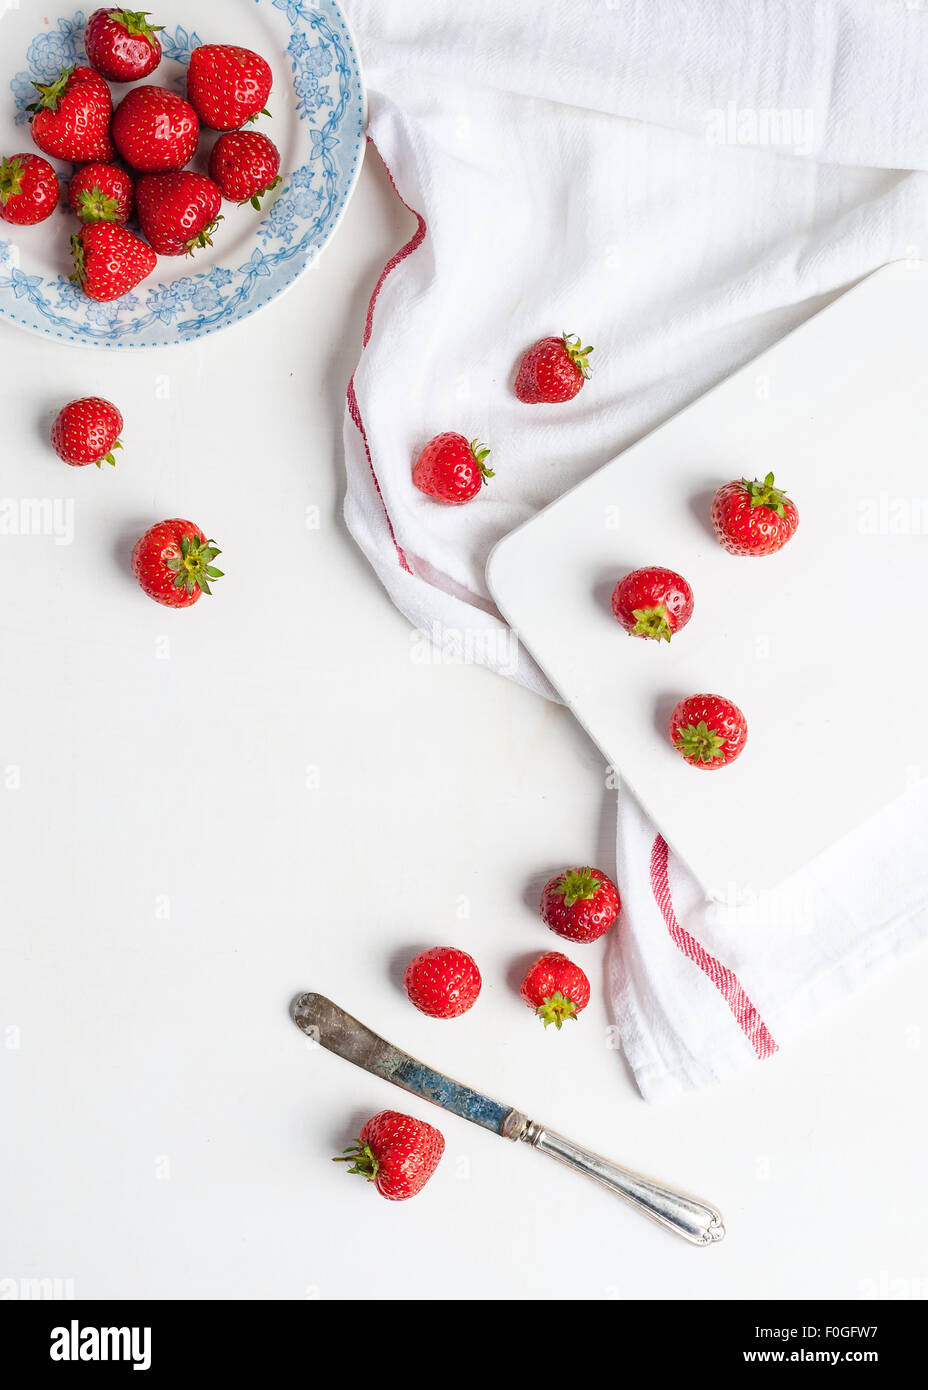 strawberries in a blue and white plate and on the table and chopping board - Stock Image